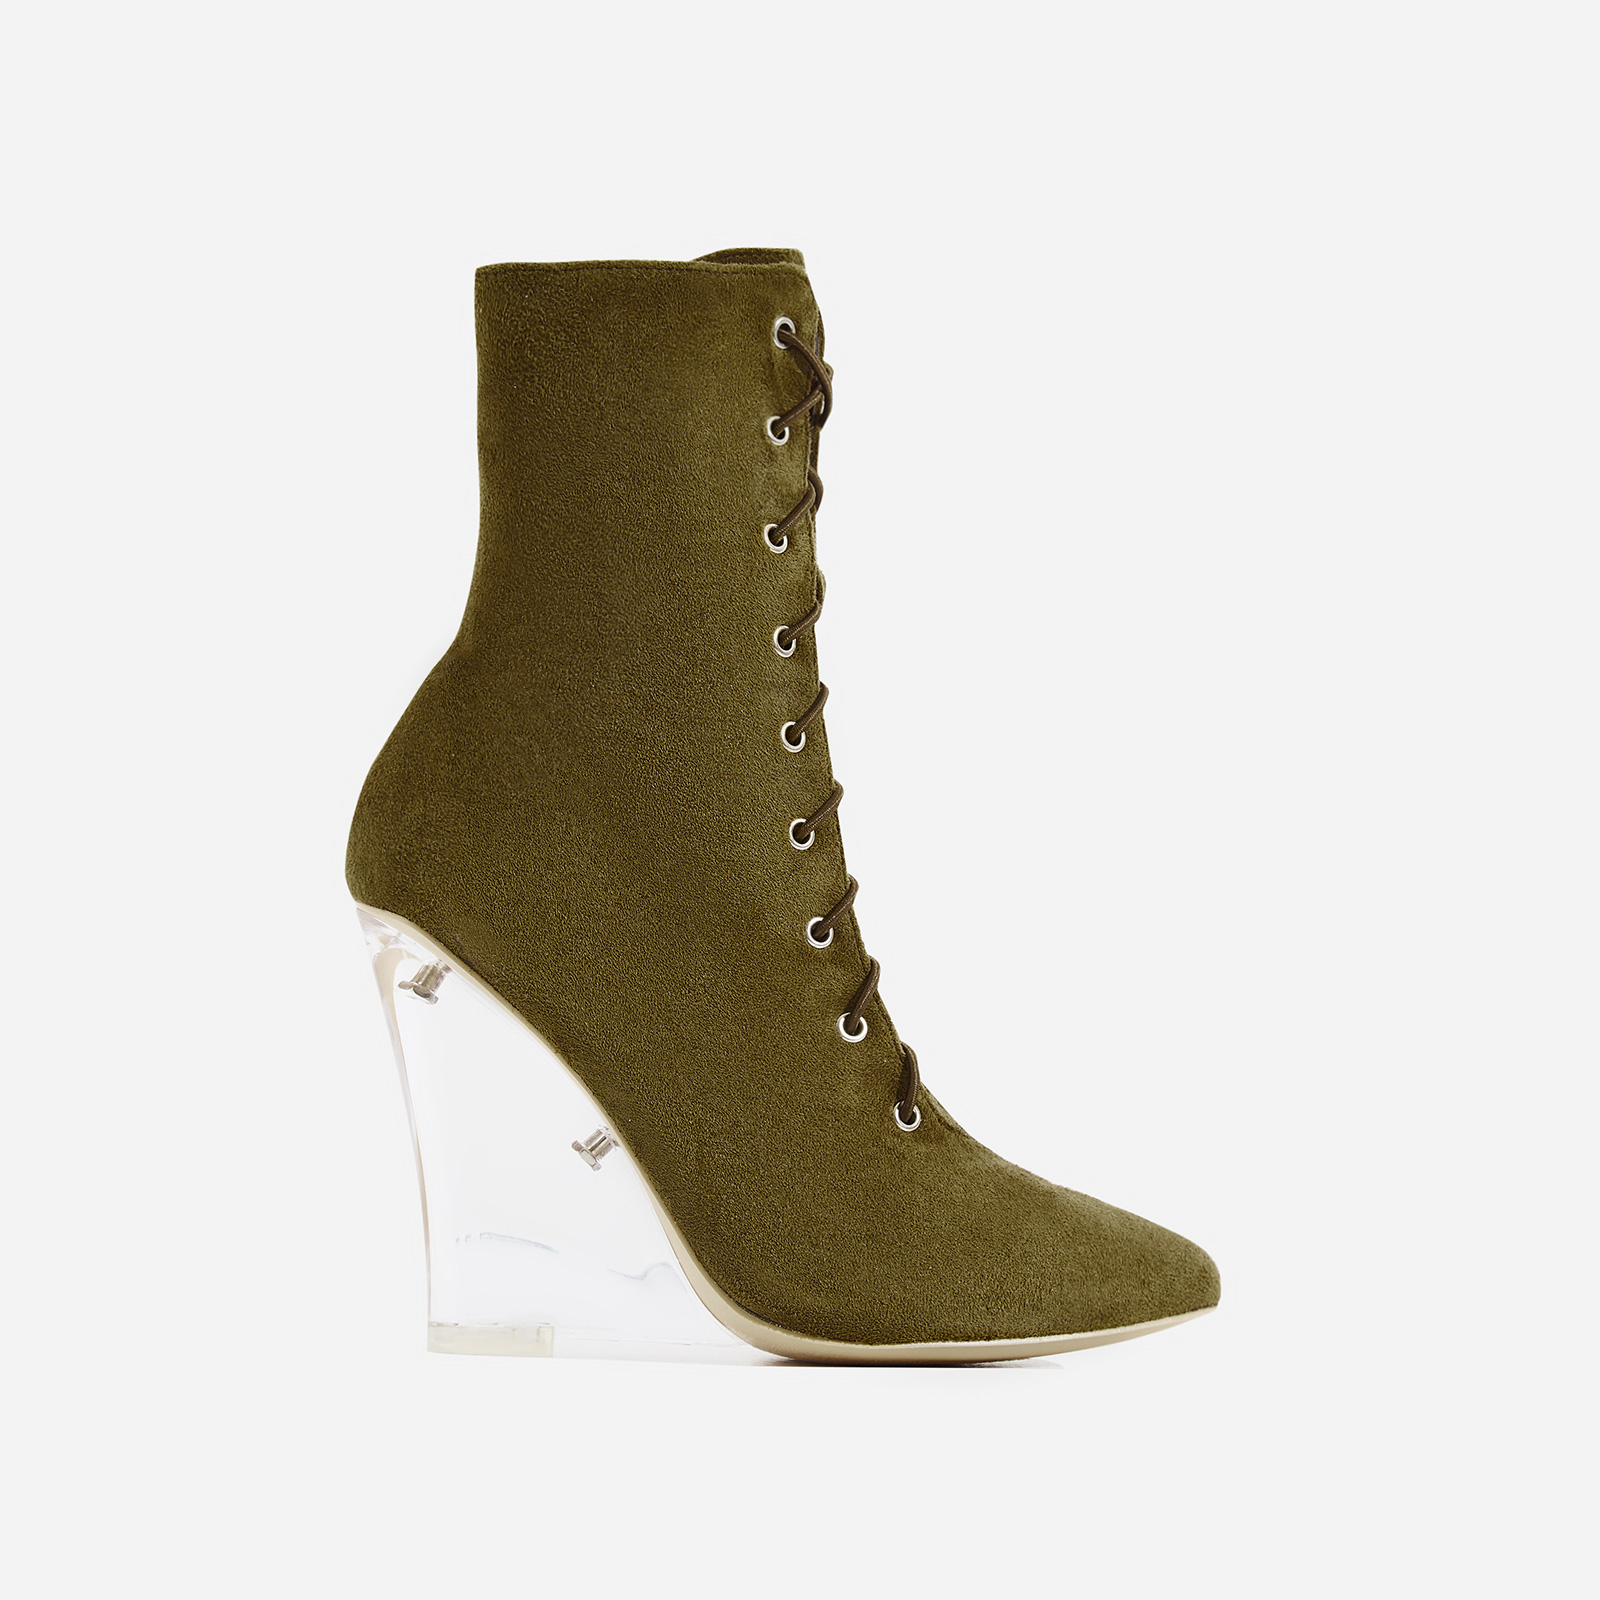 Turnaround Perspex Wedge Lace Up Ankle Boot In Khaki Faux Suede